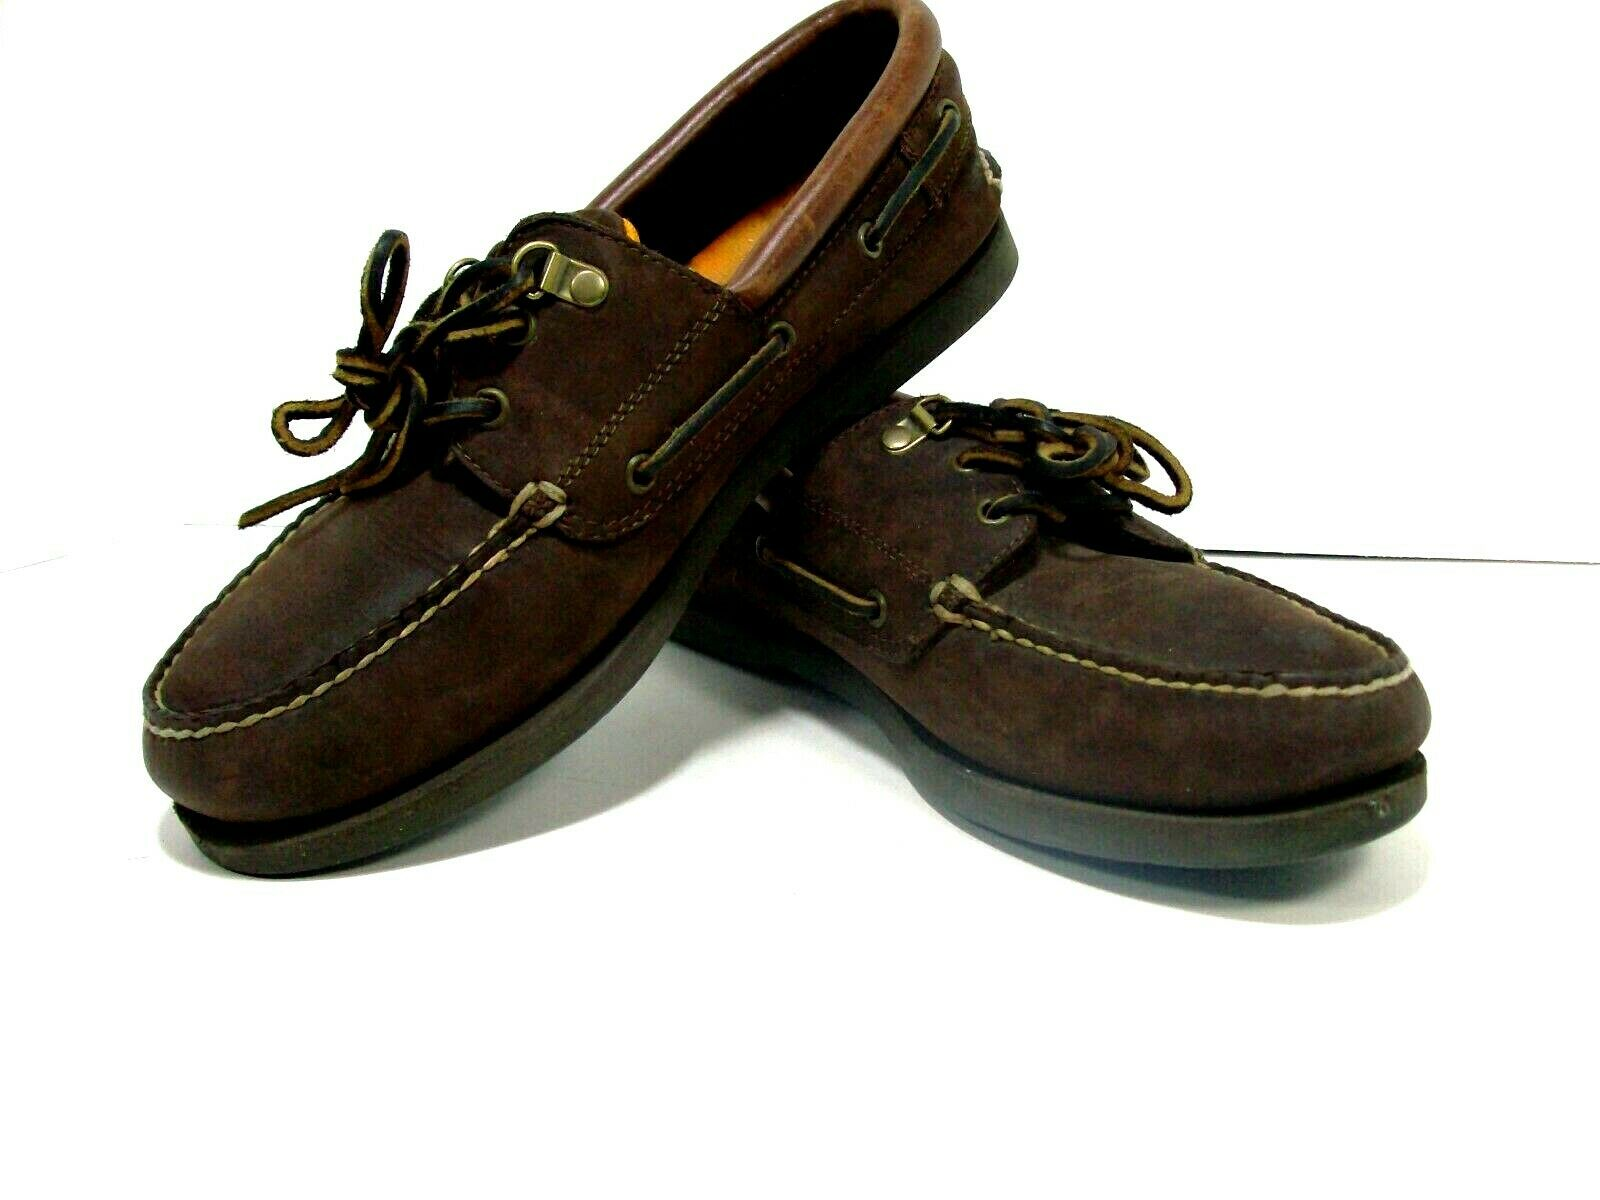 Cabelas brown leather boat shoes deck dock moc loafers shoes mens sz10 MED